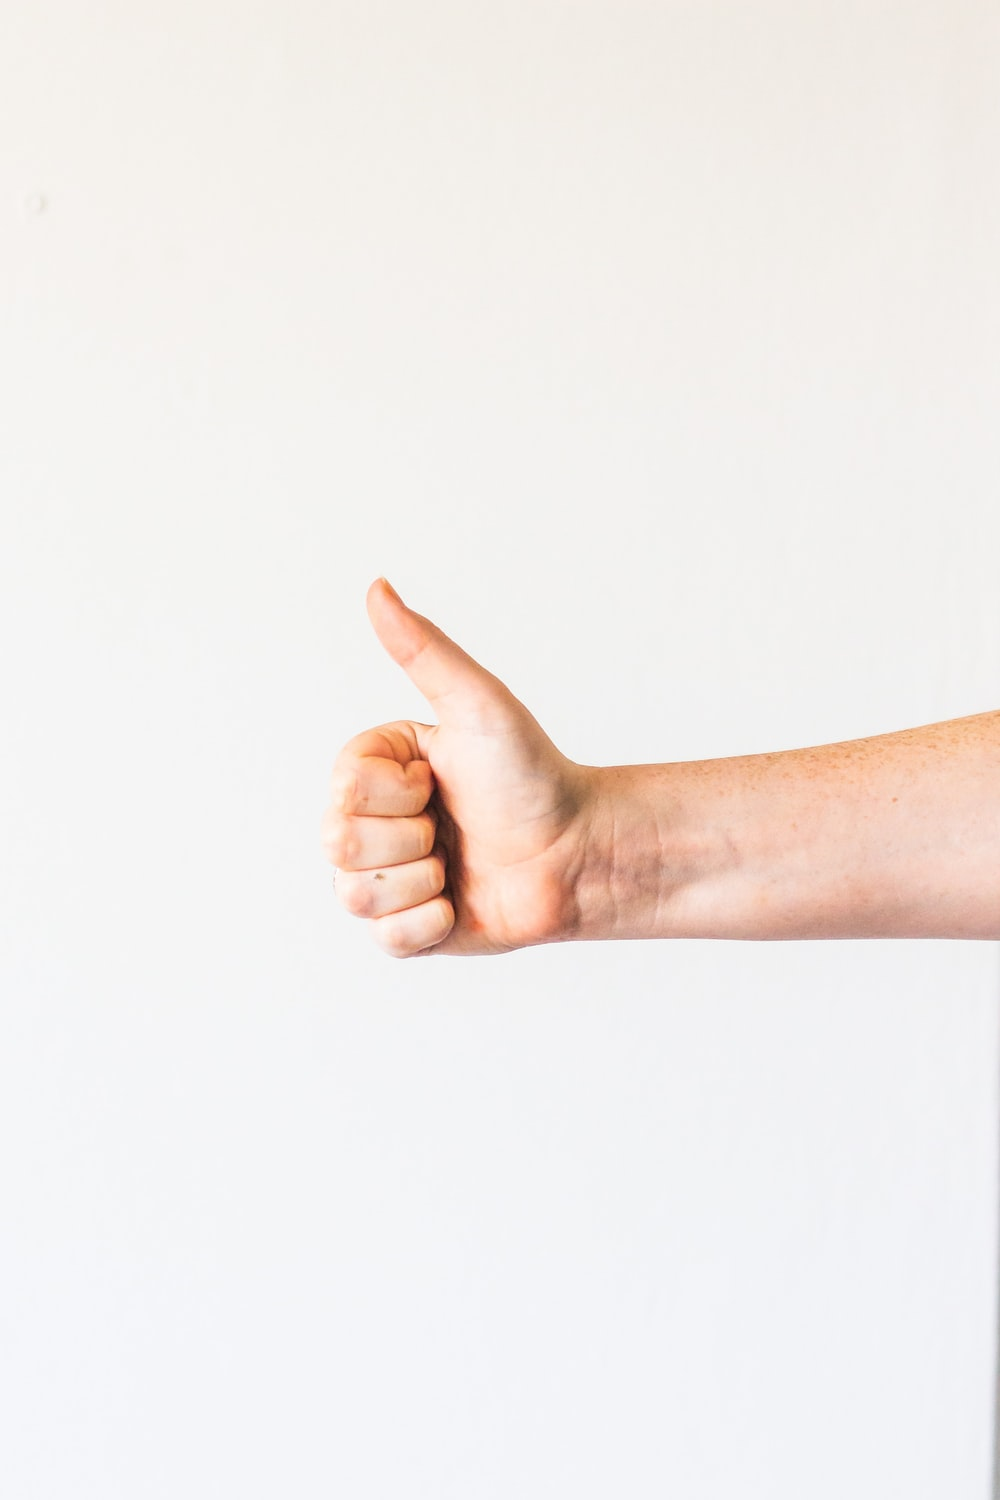 persons right hand doing thumbs up